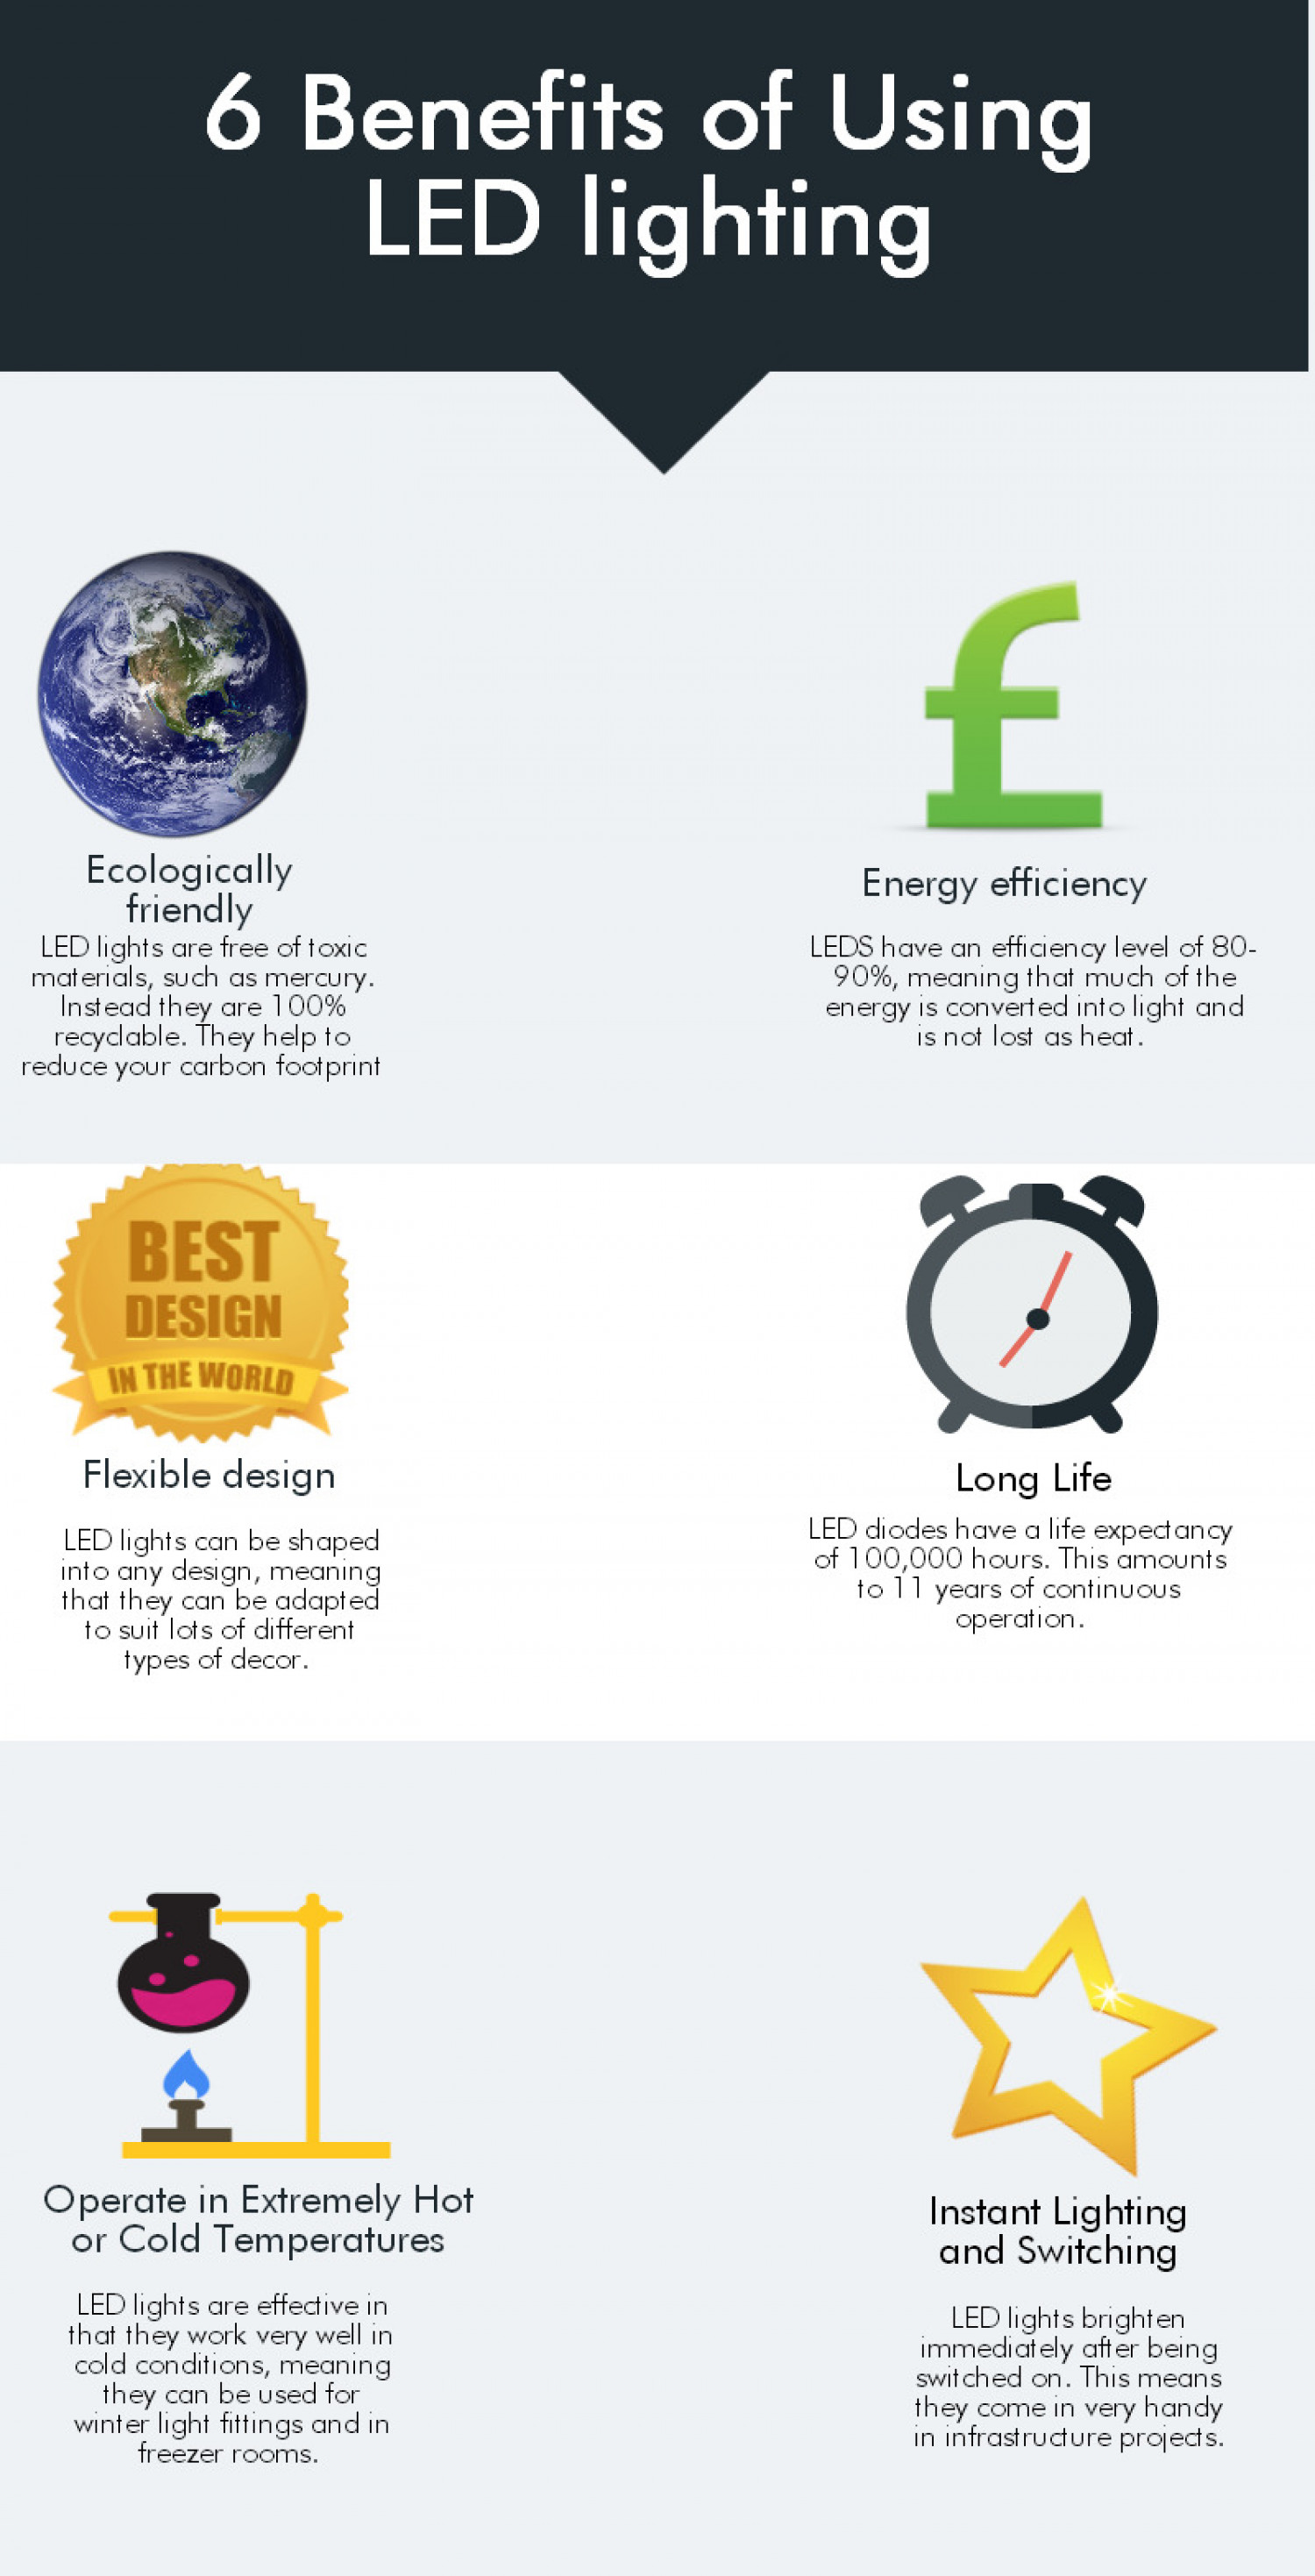 6 Benefits of Using LED Lighting Infographic